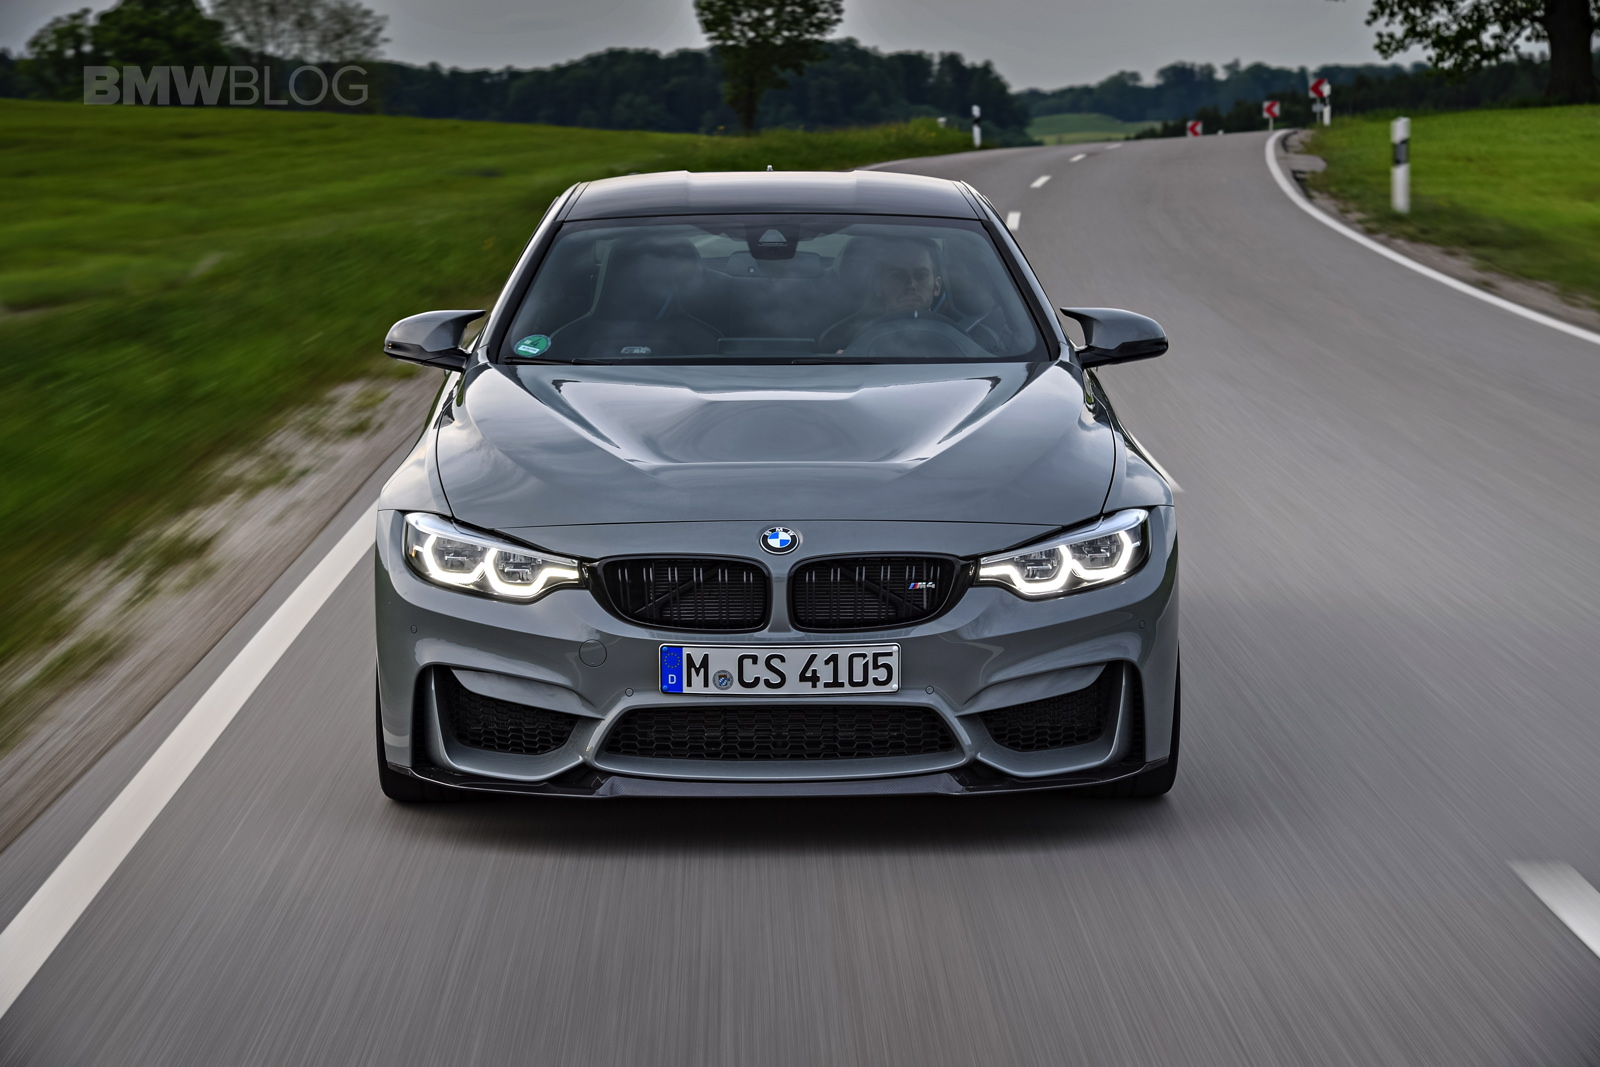 Bmw M3 Cs To Give F80 A Proper Send Off